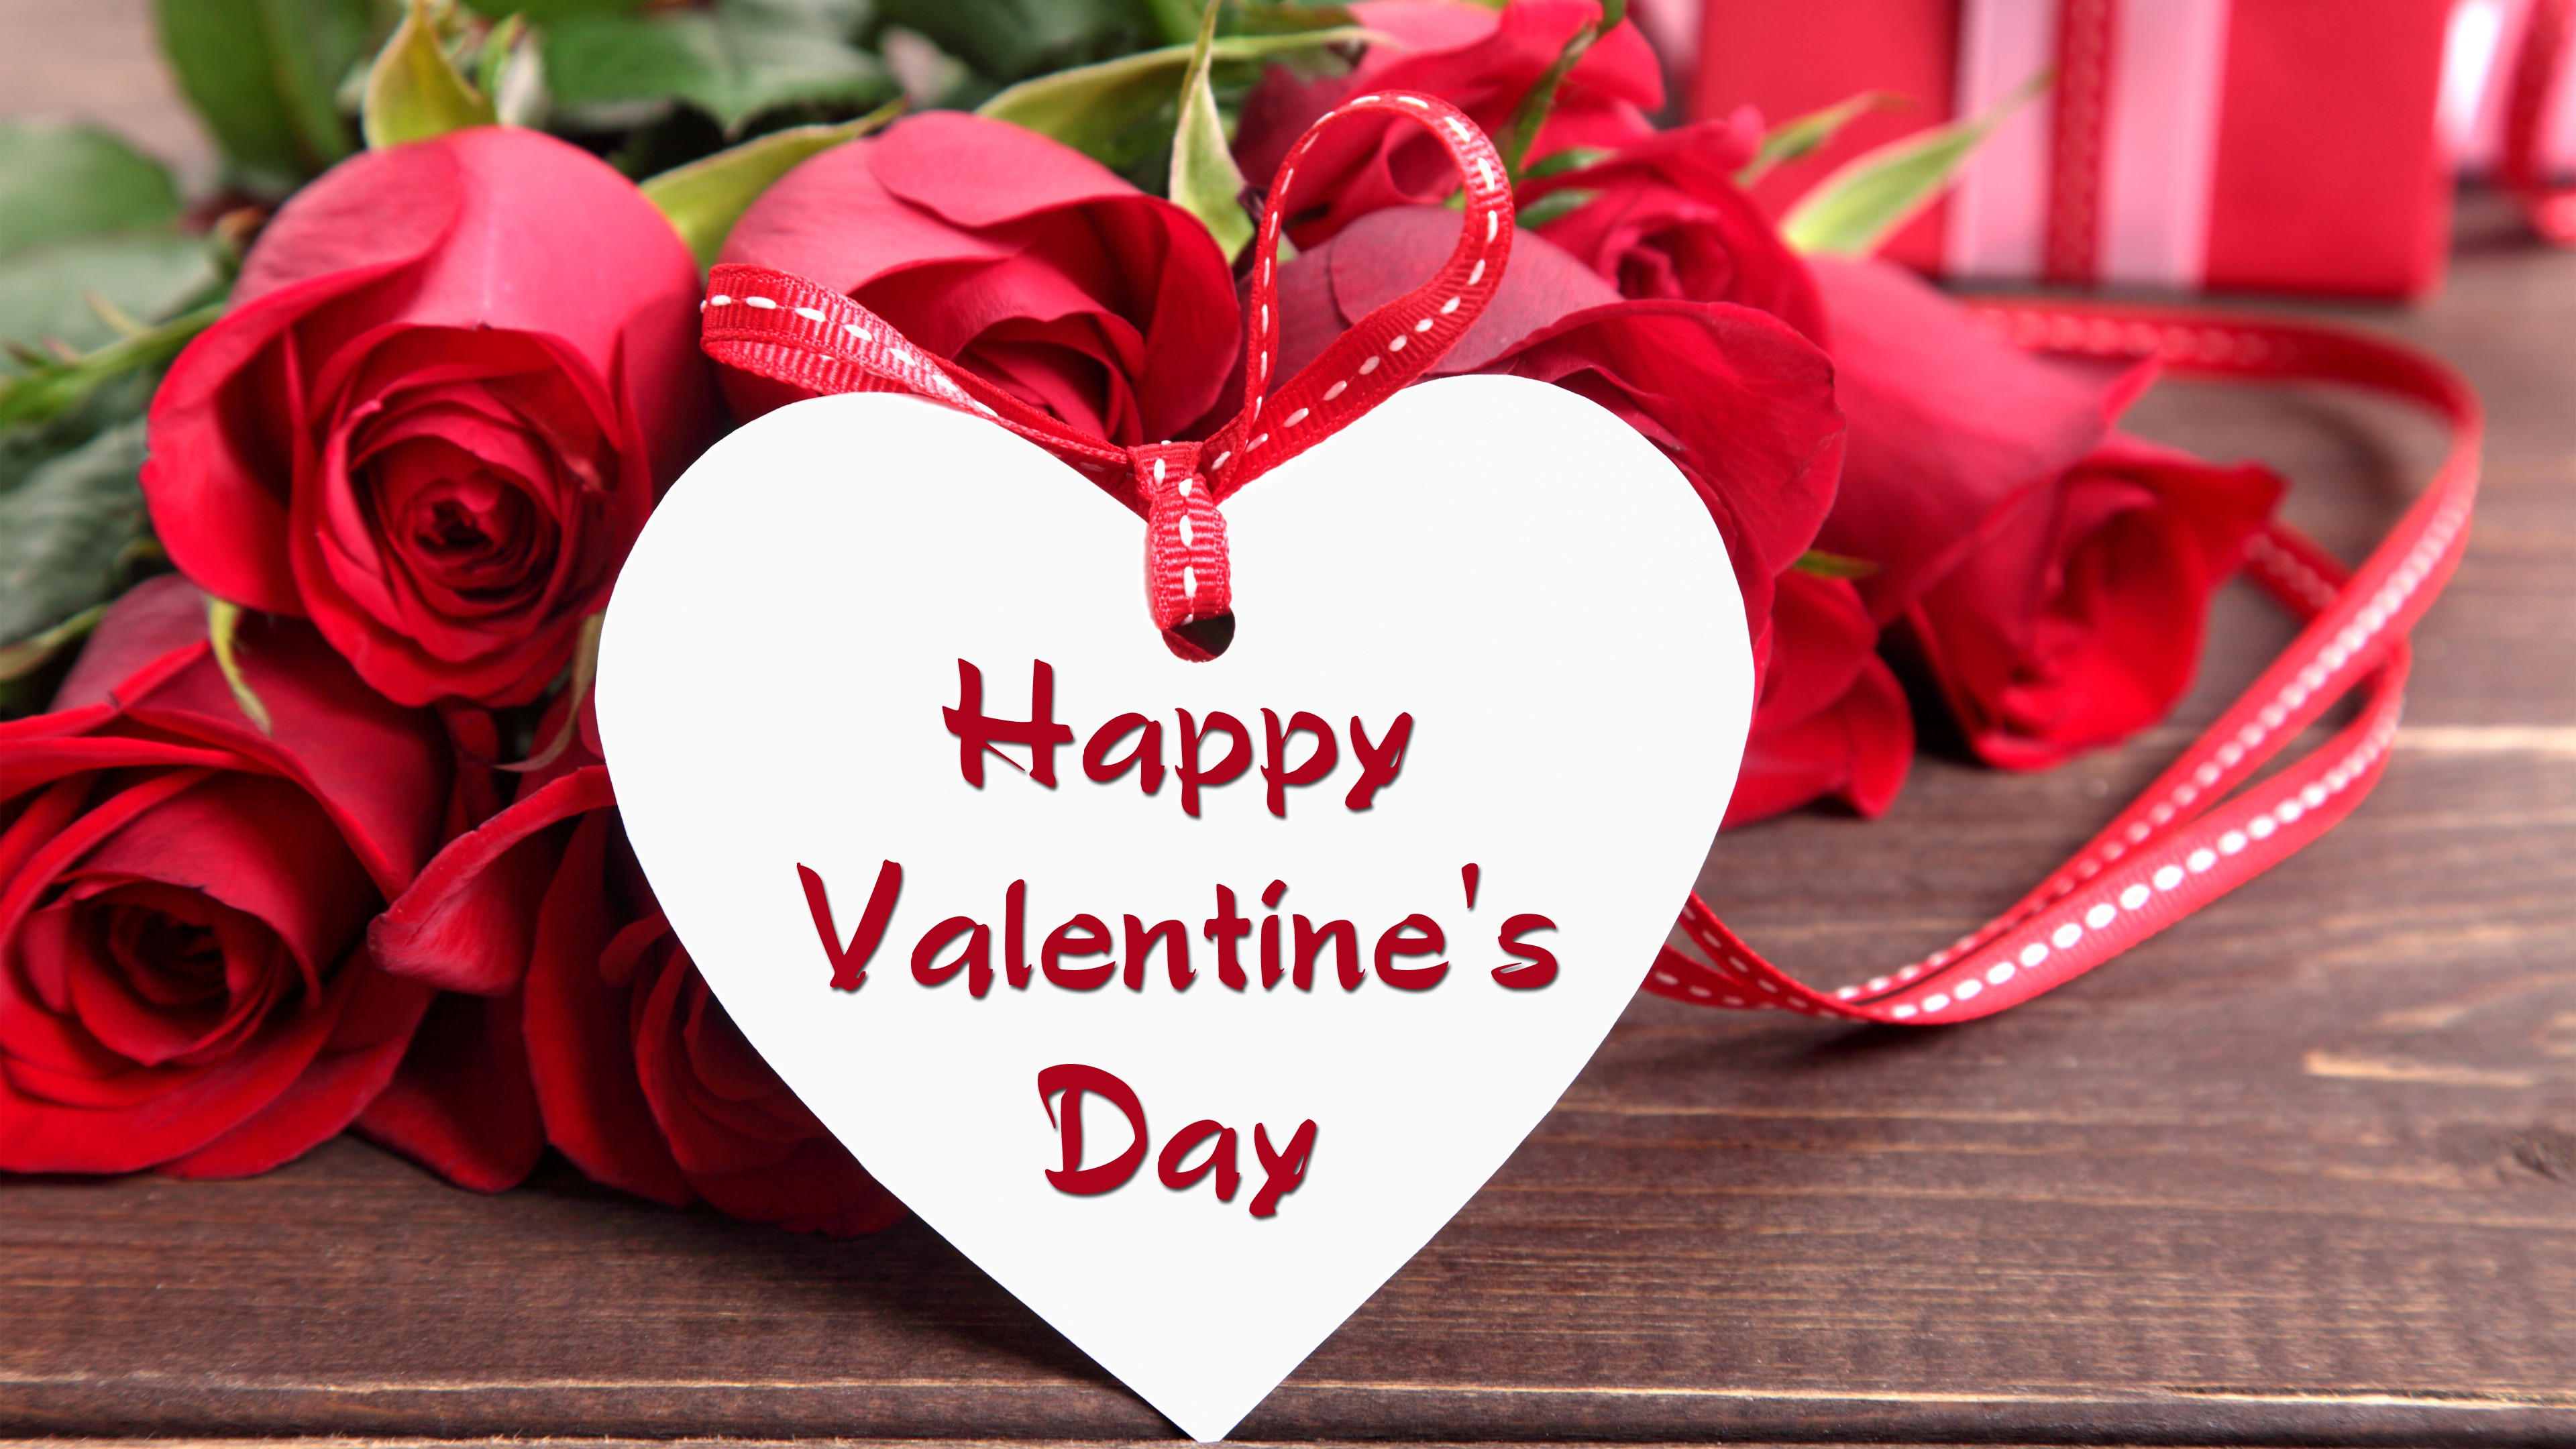 Valentines Day Images HD | Valentines Day Love Images Wallpapers Free Download 2019